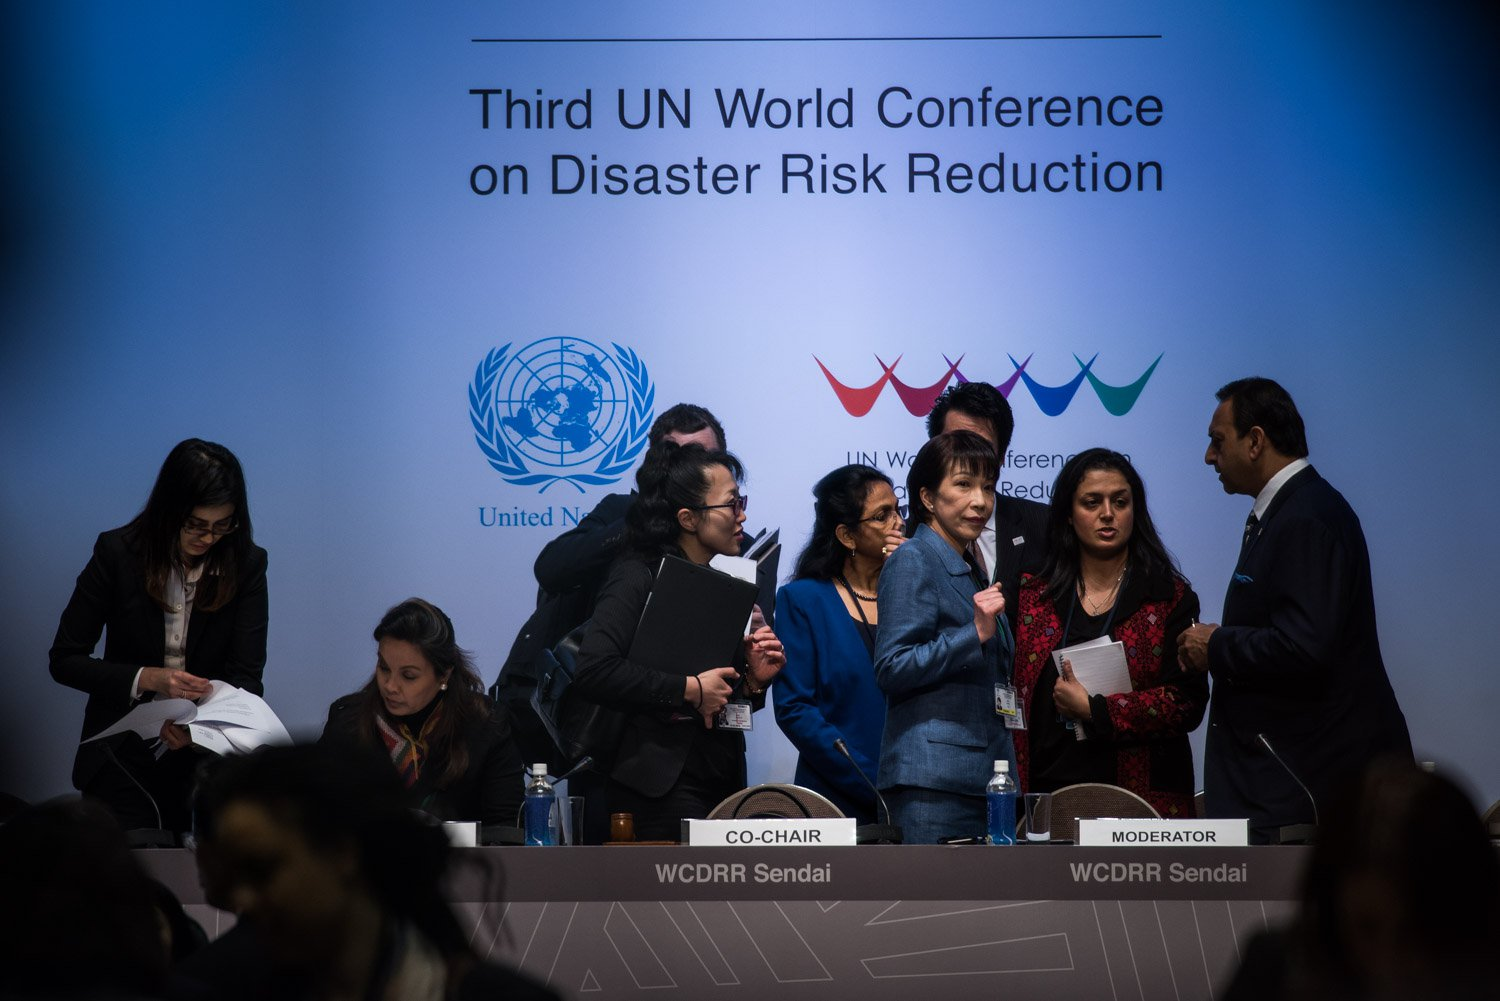 : Minister of Internal Affairs and Communications of Japan discussing before the Third UN World Conference on Disaster Risk Reduction.